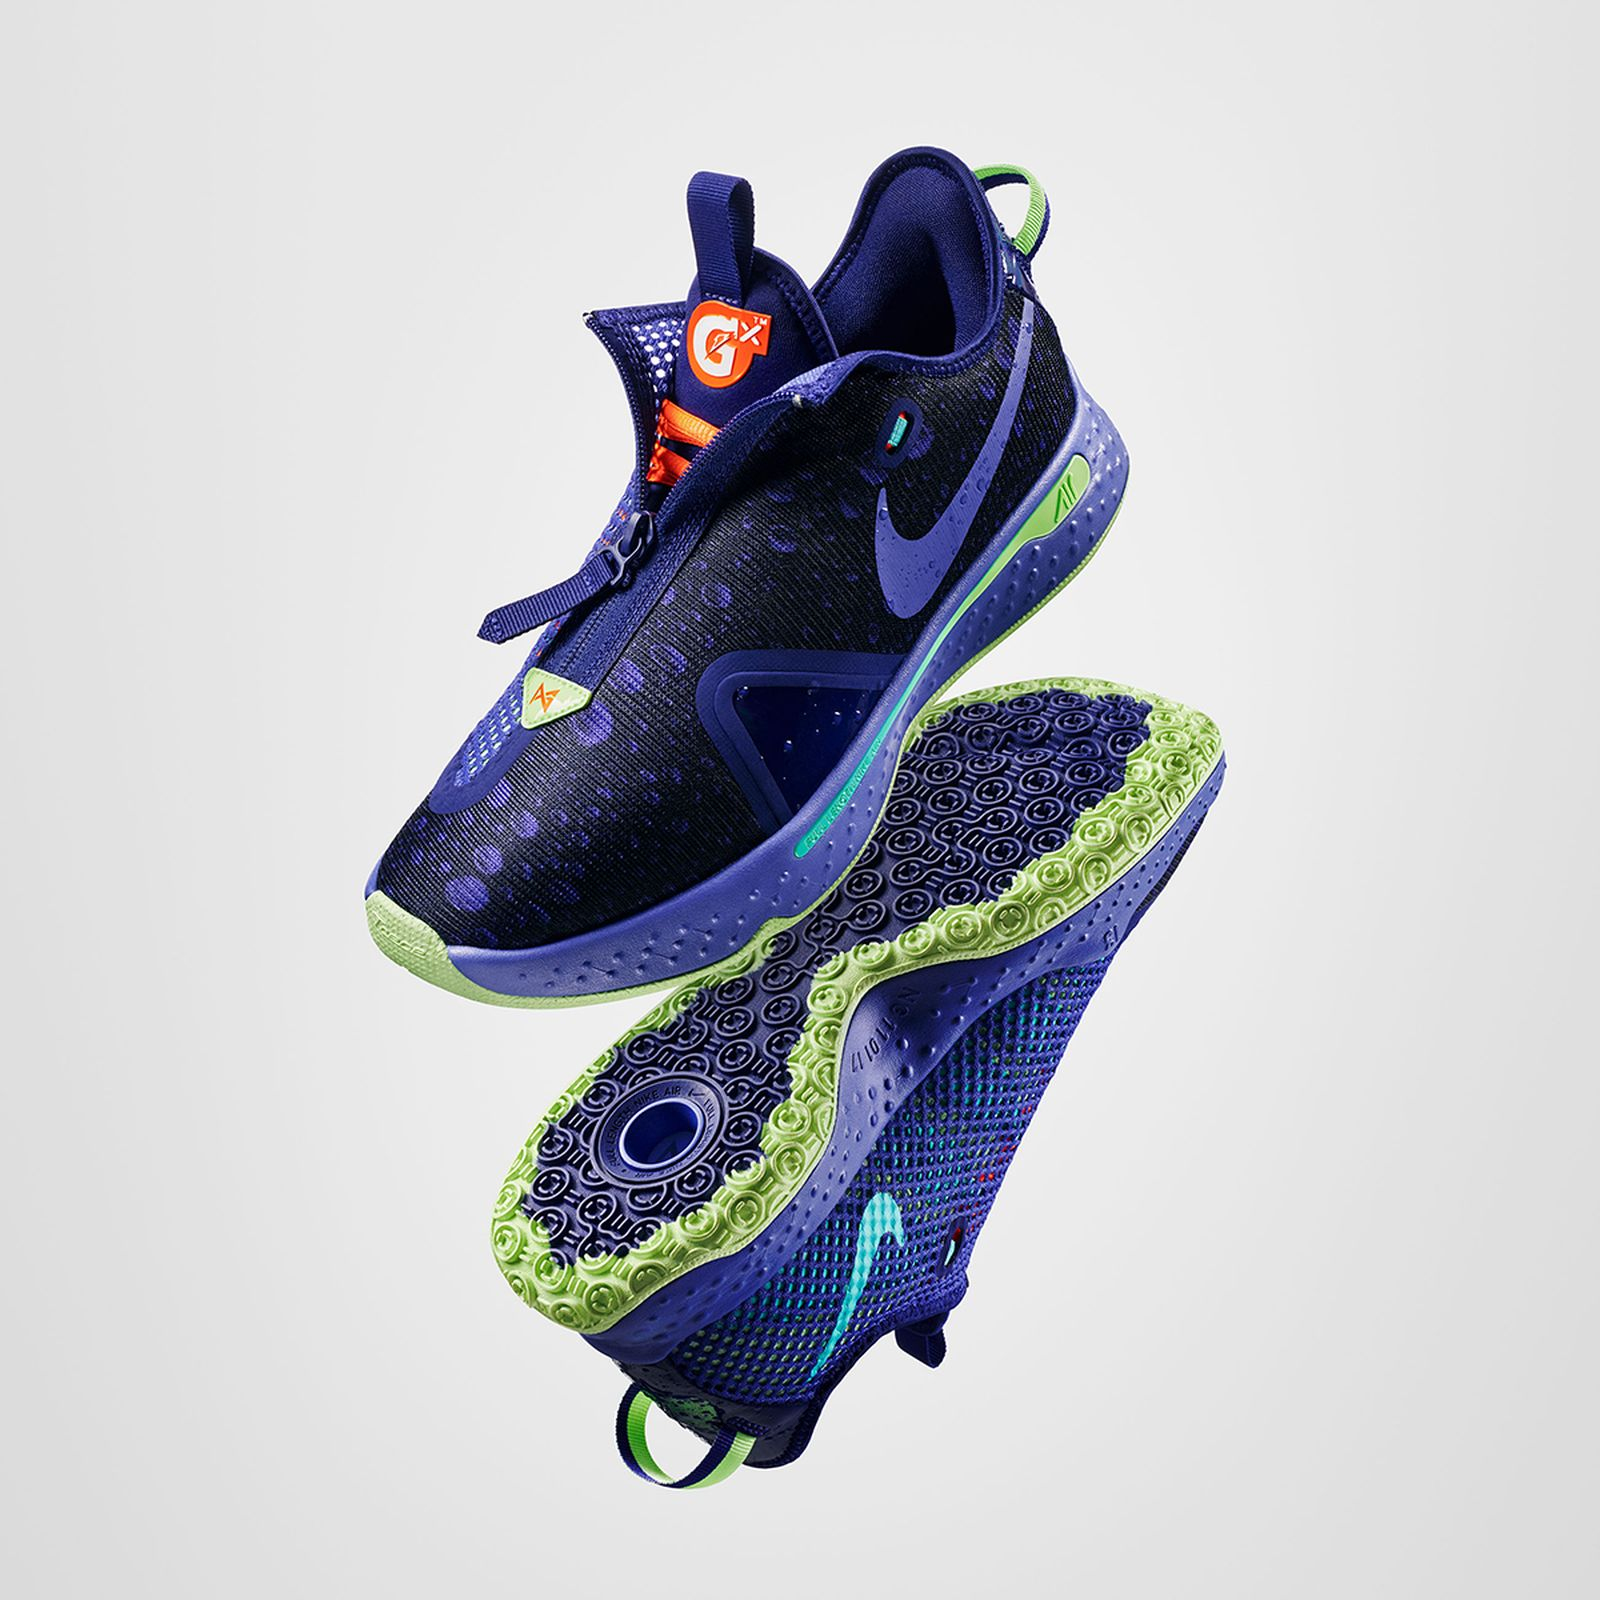 Hito no se dio cuenta Diagnosticar  Paul George's PG2 Crep Is Inspired by PlayStation & Features a Light-Up  Tongue